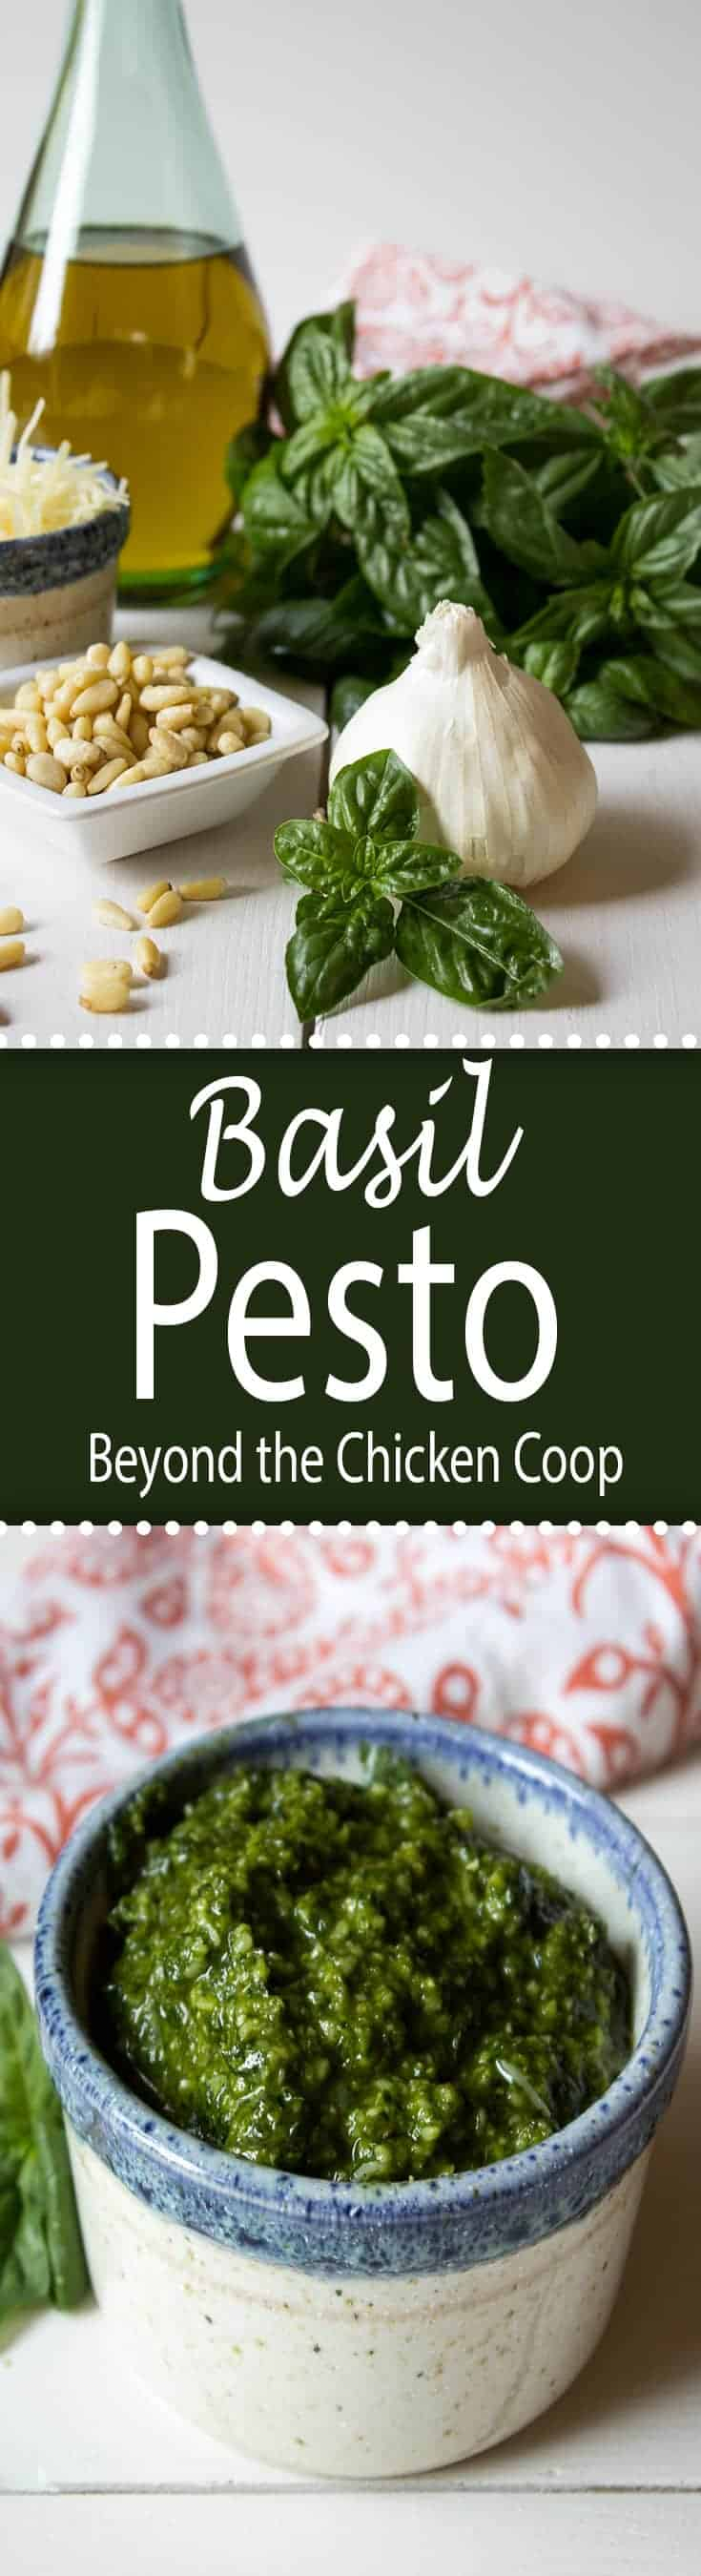 Fresh basil, garlic, pine nuts, olive oil and cheese make a delicious homemade basil pesto.